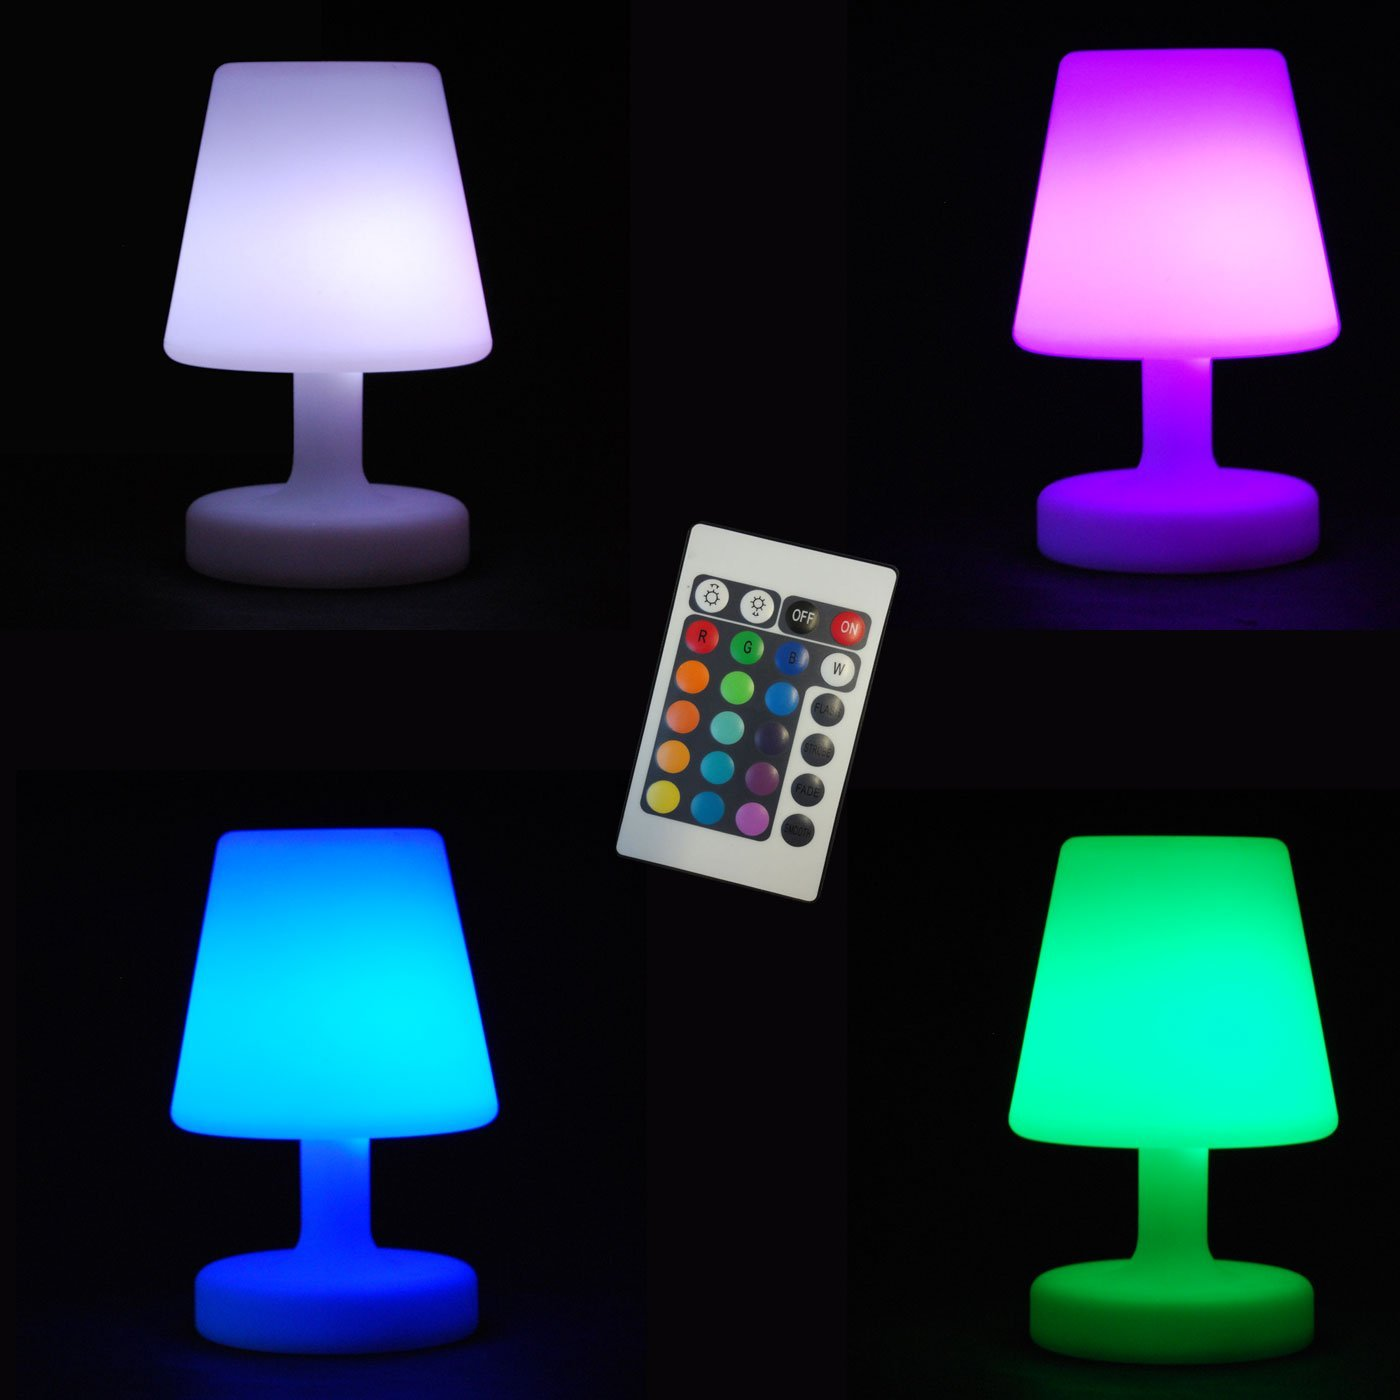 lampe led autonome ampoule led steca e k froid agrandir luimage with lampe led autonome. Black Bedroom Furniture Sets. Home Design Ideas